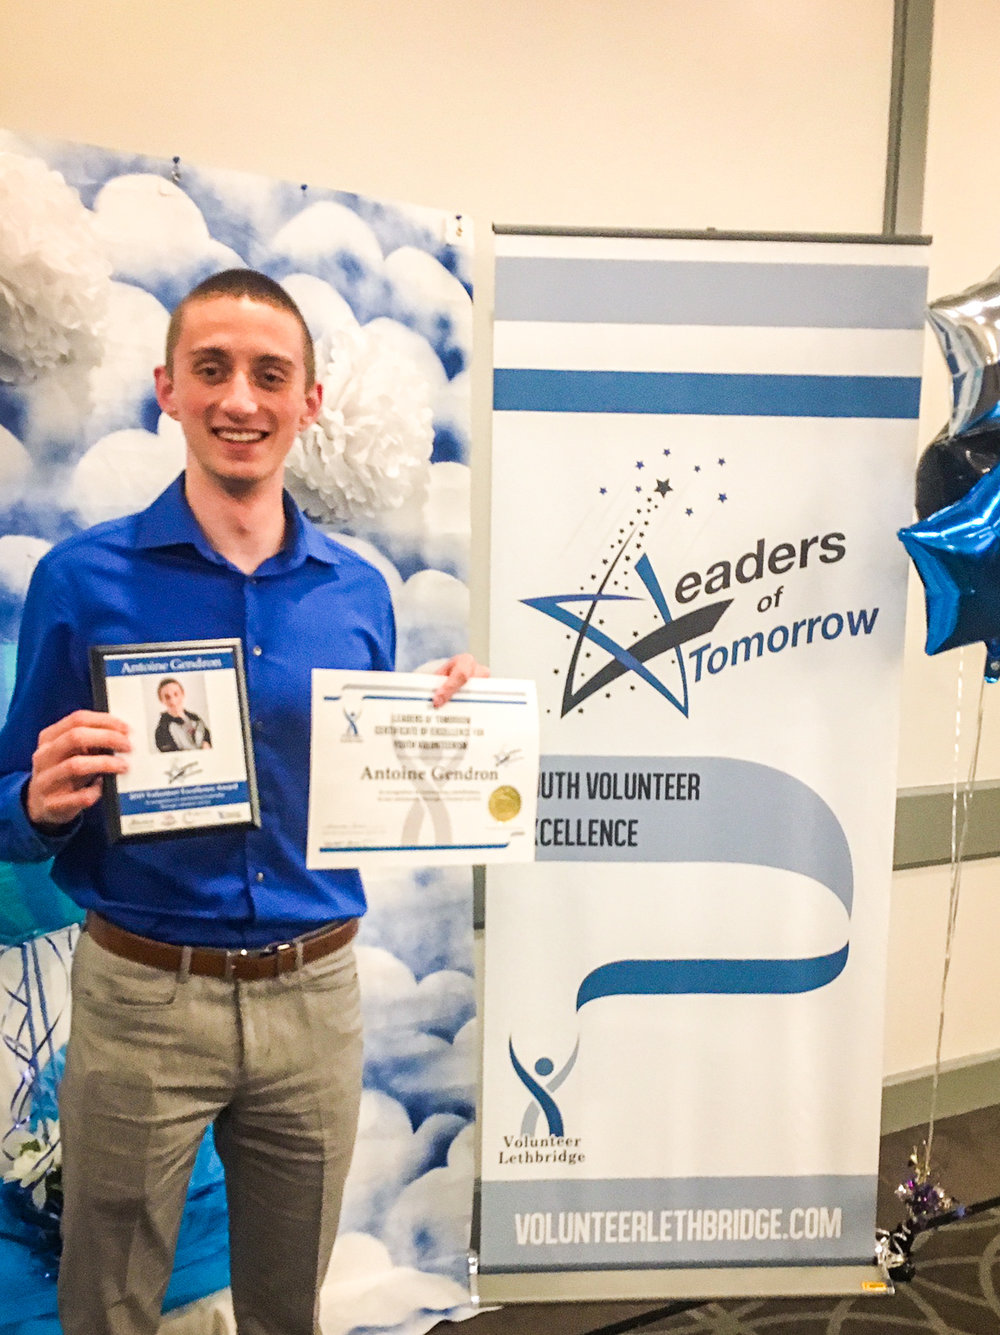 Antoine showing off his Excellence Award at the 22nd Annual Leaders of Tomorrow Gala in 2019.